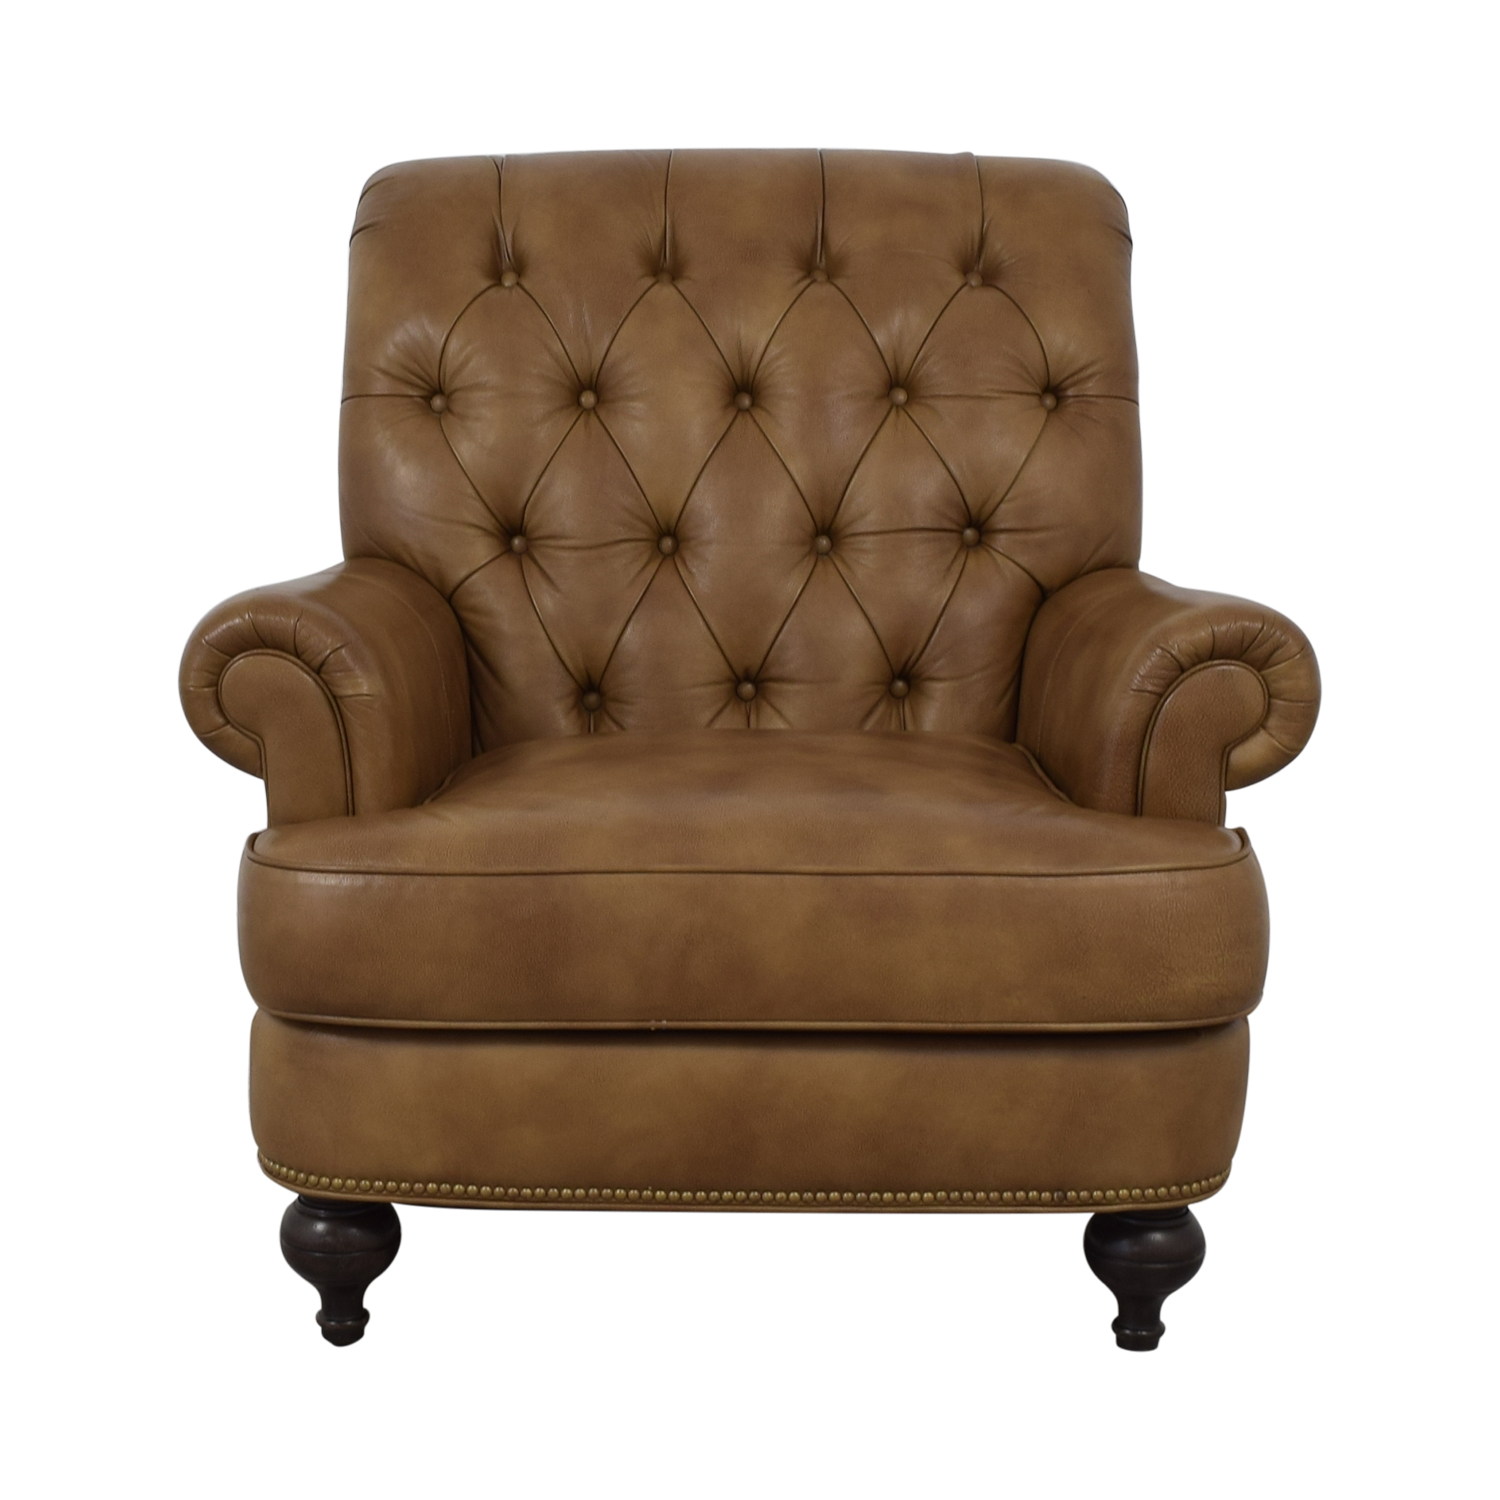 Ethan Allen Shawe Leather Chair sale